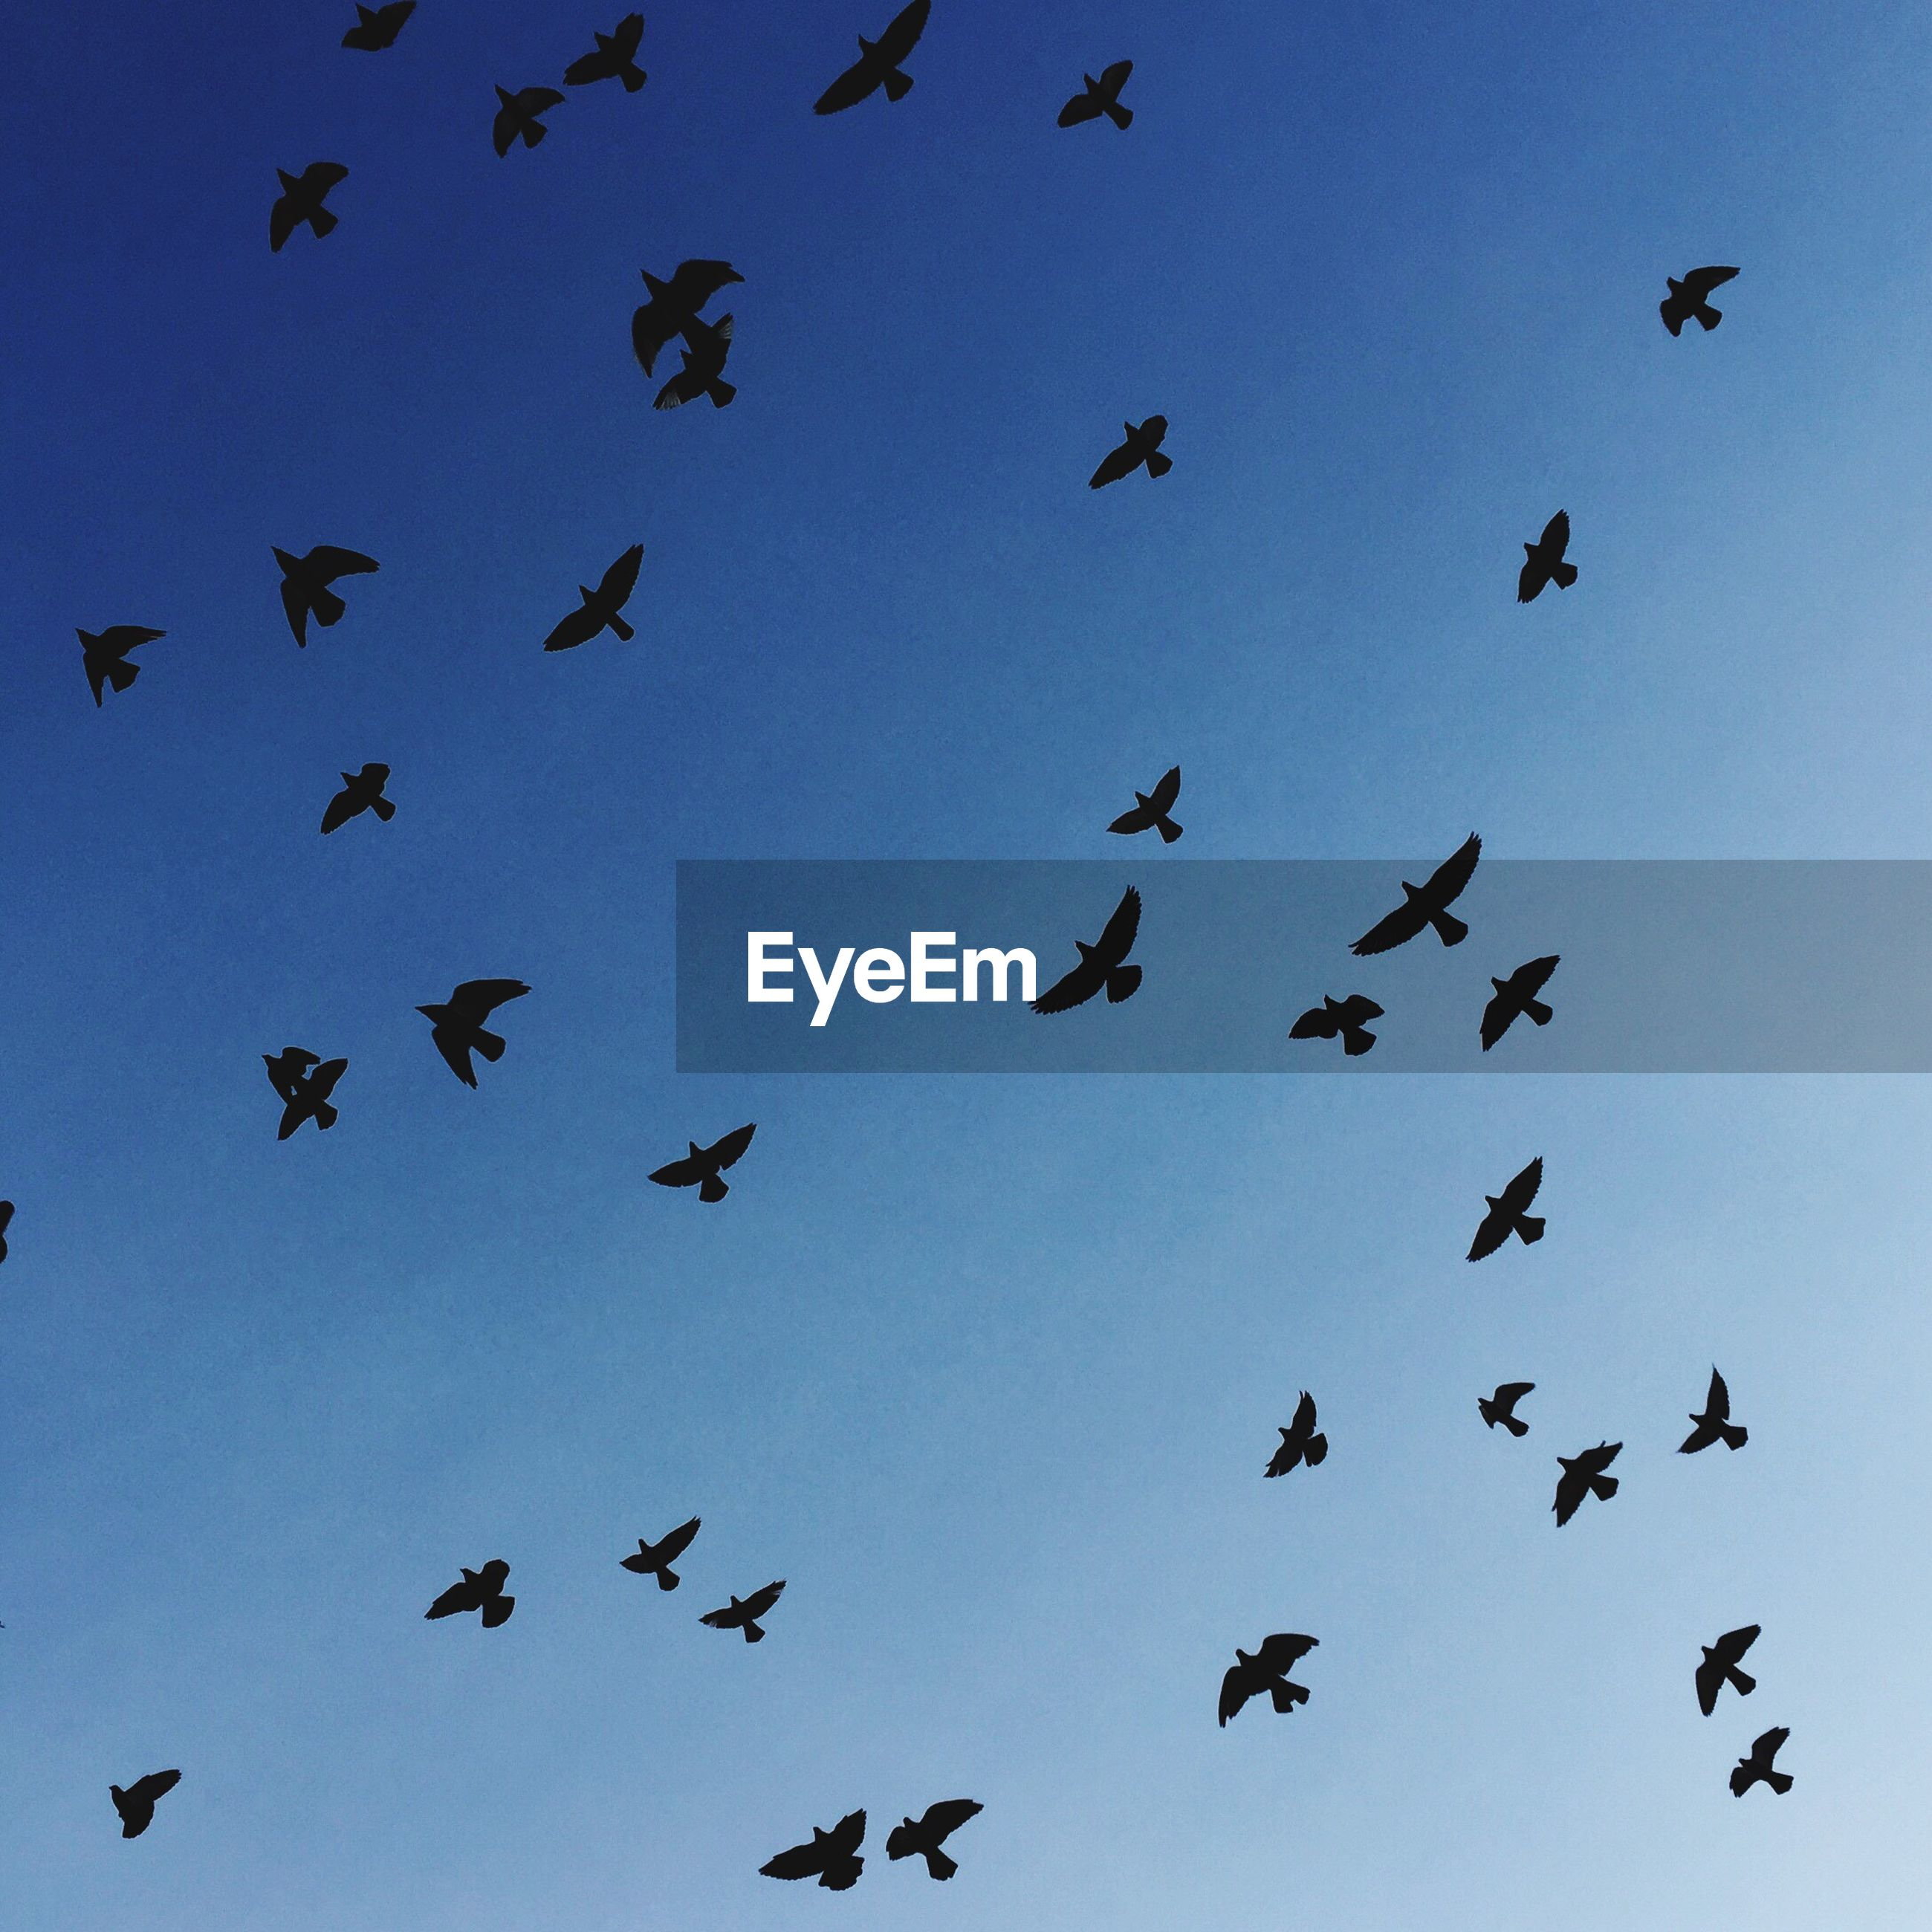 bird, flying, animal themes, animals in the wild, wildlife, flock of birds, low angle view, spread wings, sky, clear sky, mid-air, togetherness, silhouette, blue, nature, outdoors, freedom, medium group of animals, day